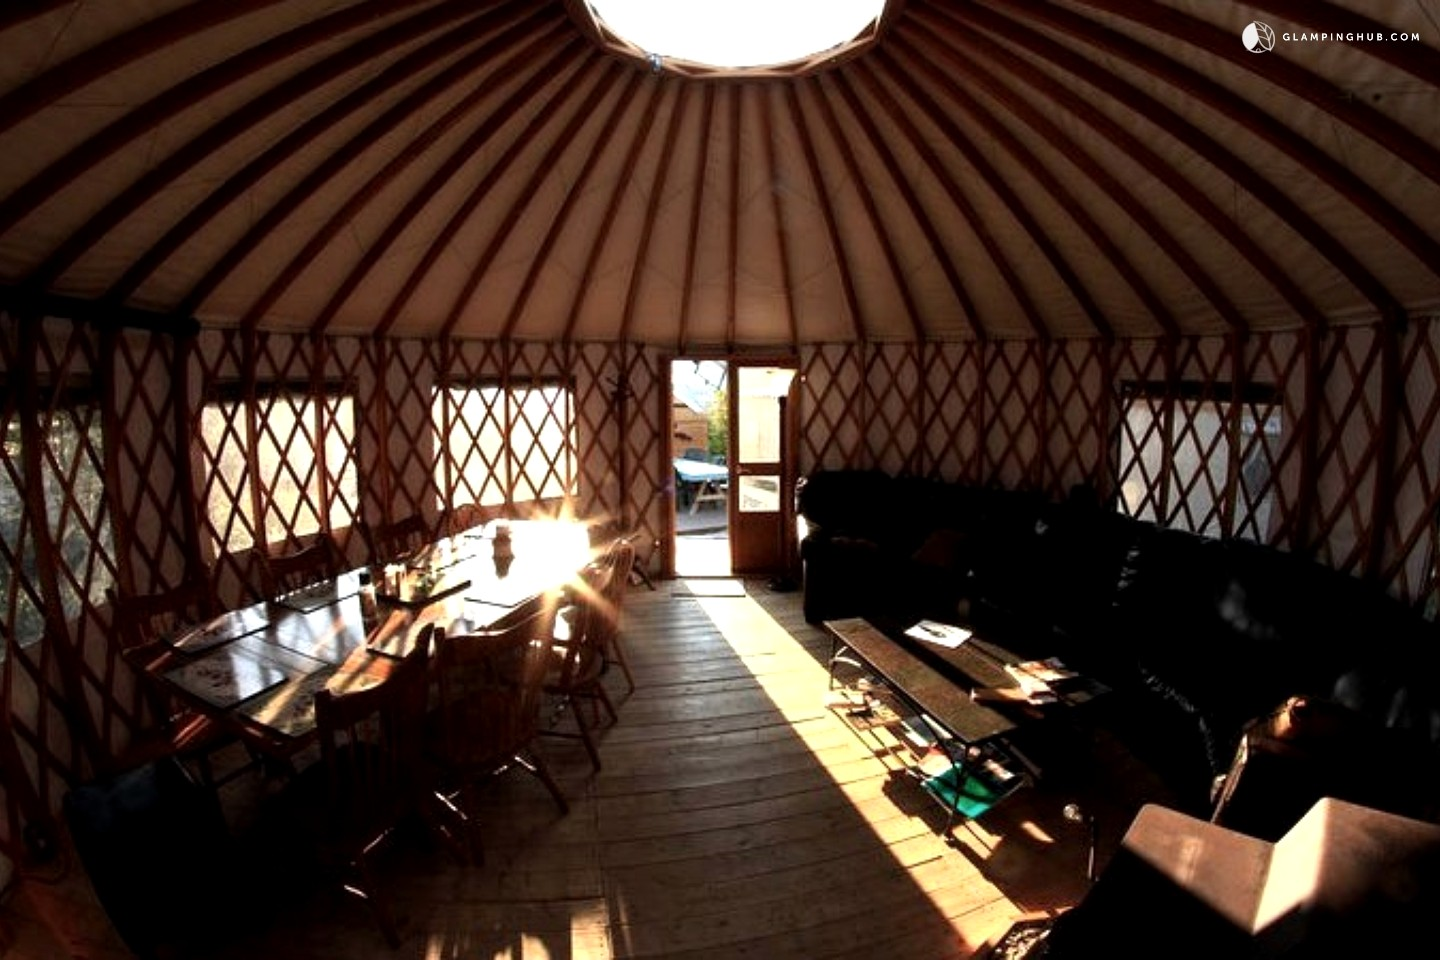 Photo of Fly Fishing Glamping Camp with a Shared Kitchen Yurt in British Columbia